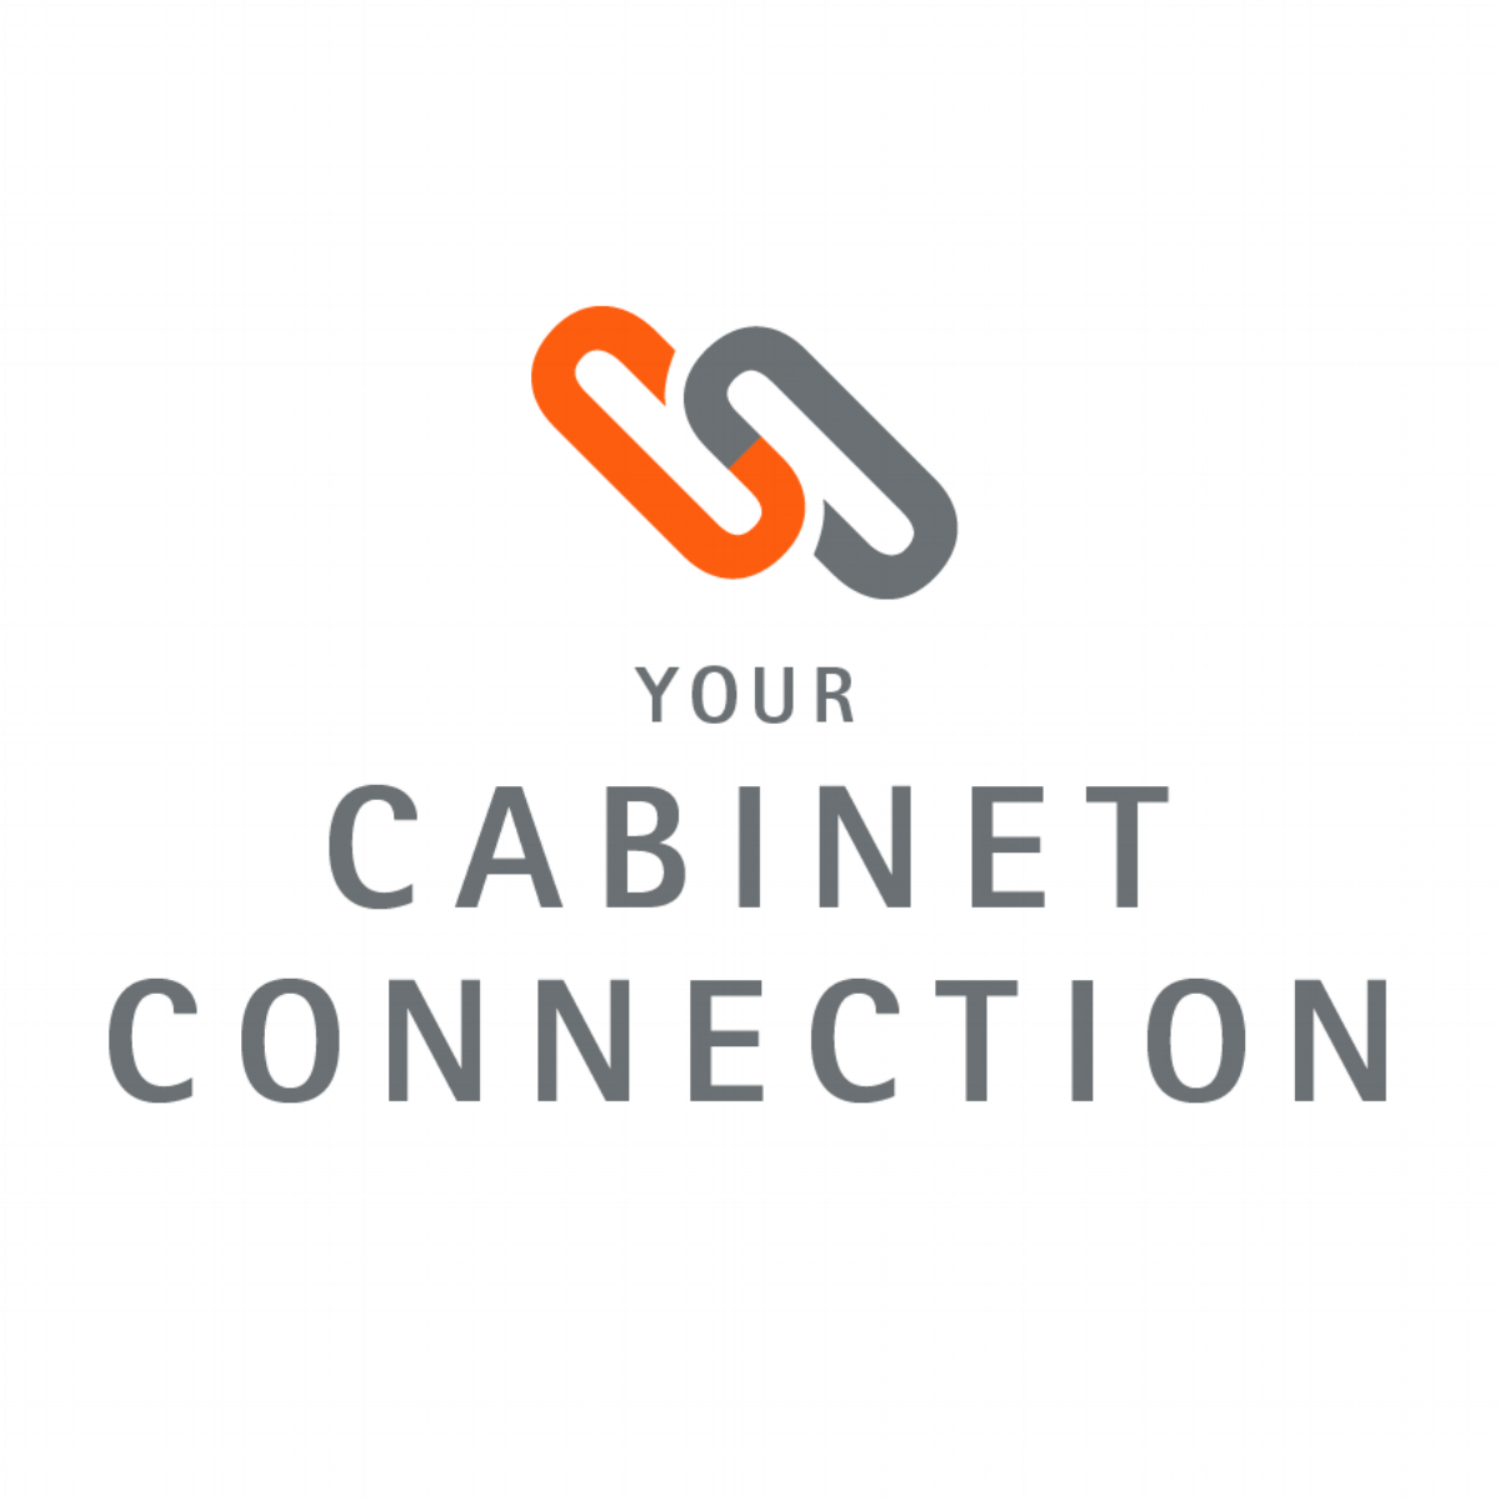 Your Cabinet Connection